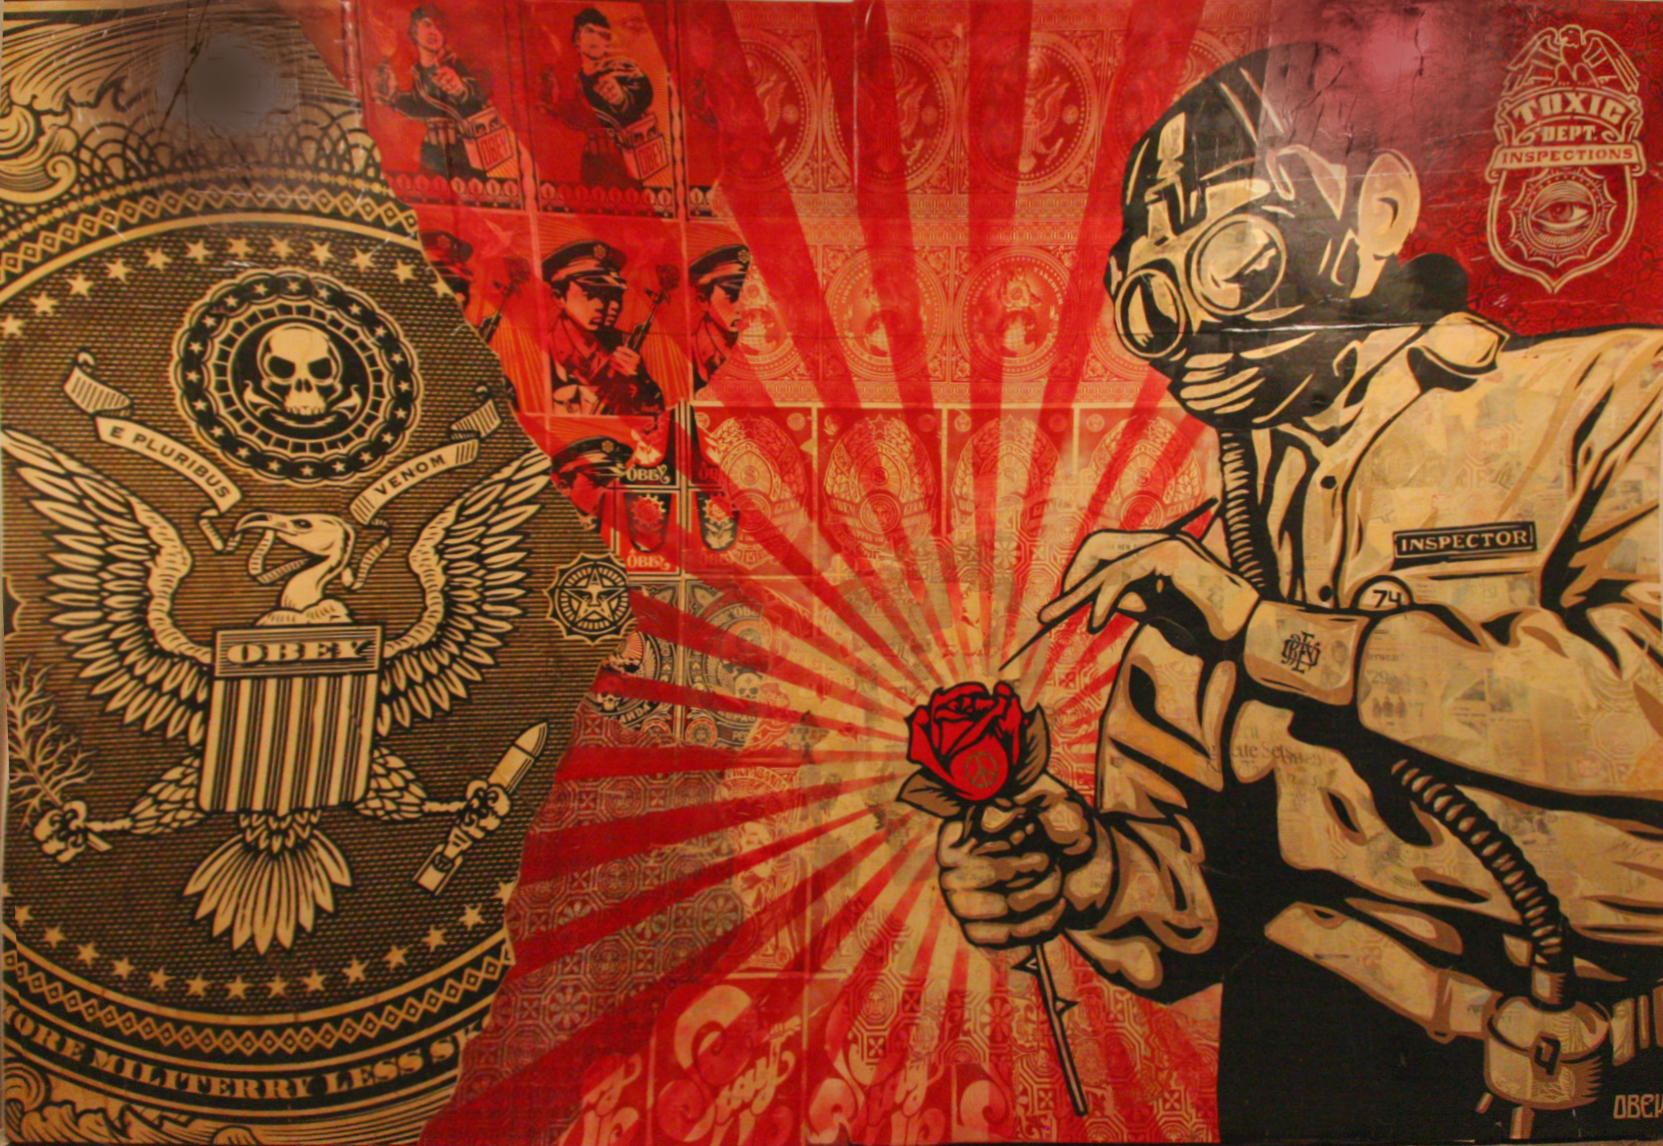 Obey Shepard Wallpaper 1663x1146 Obey Shepard Fairey 1663x1146